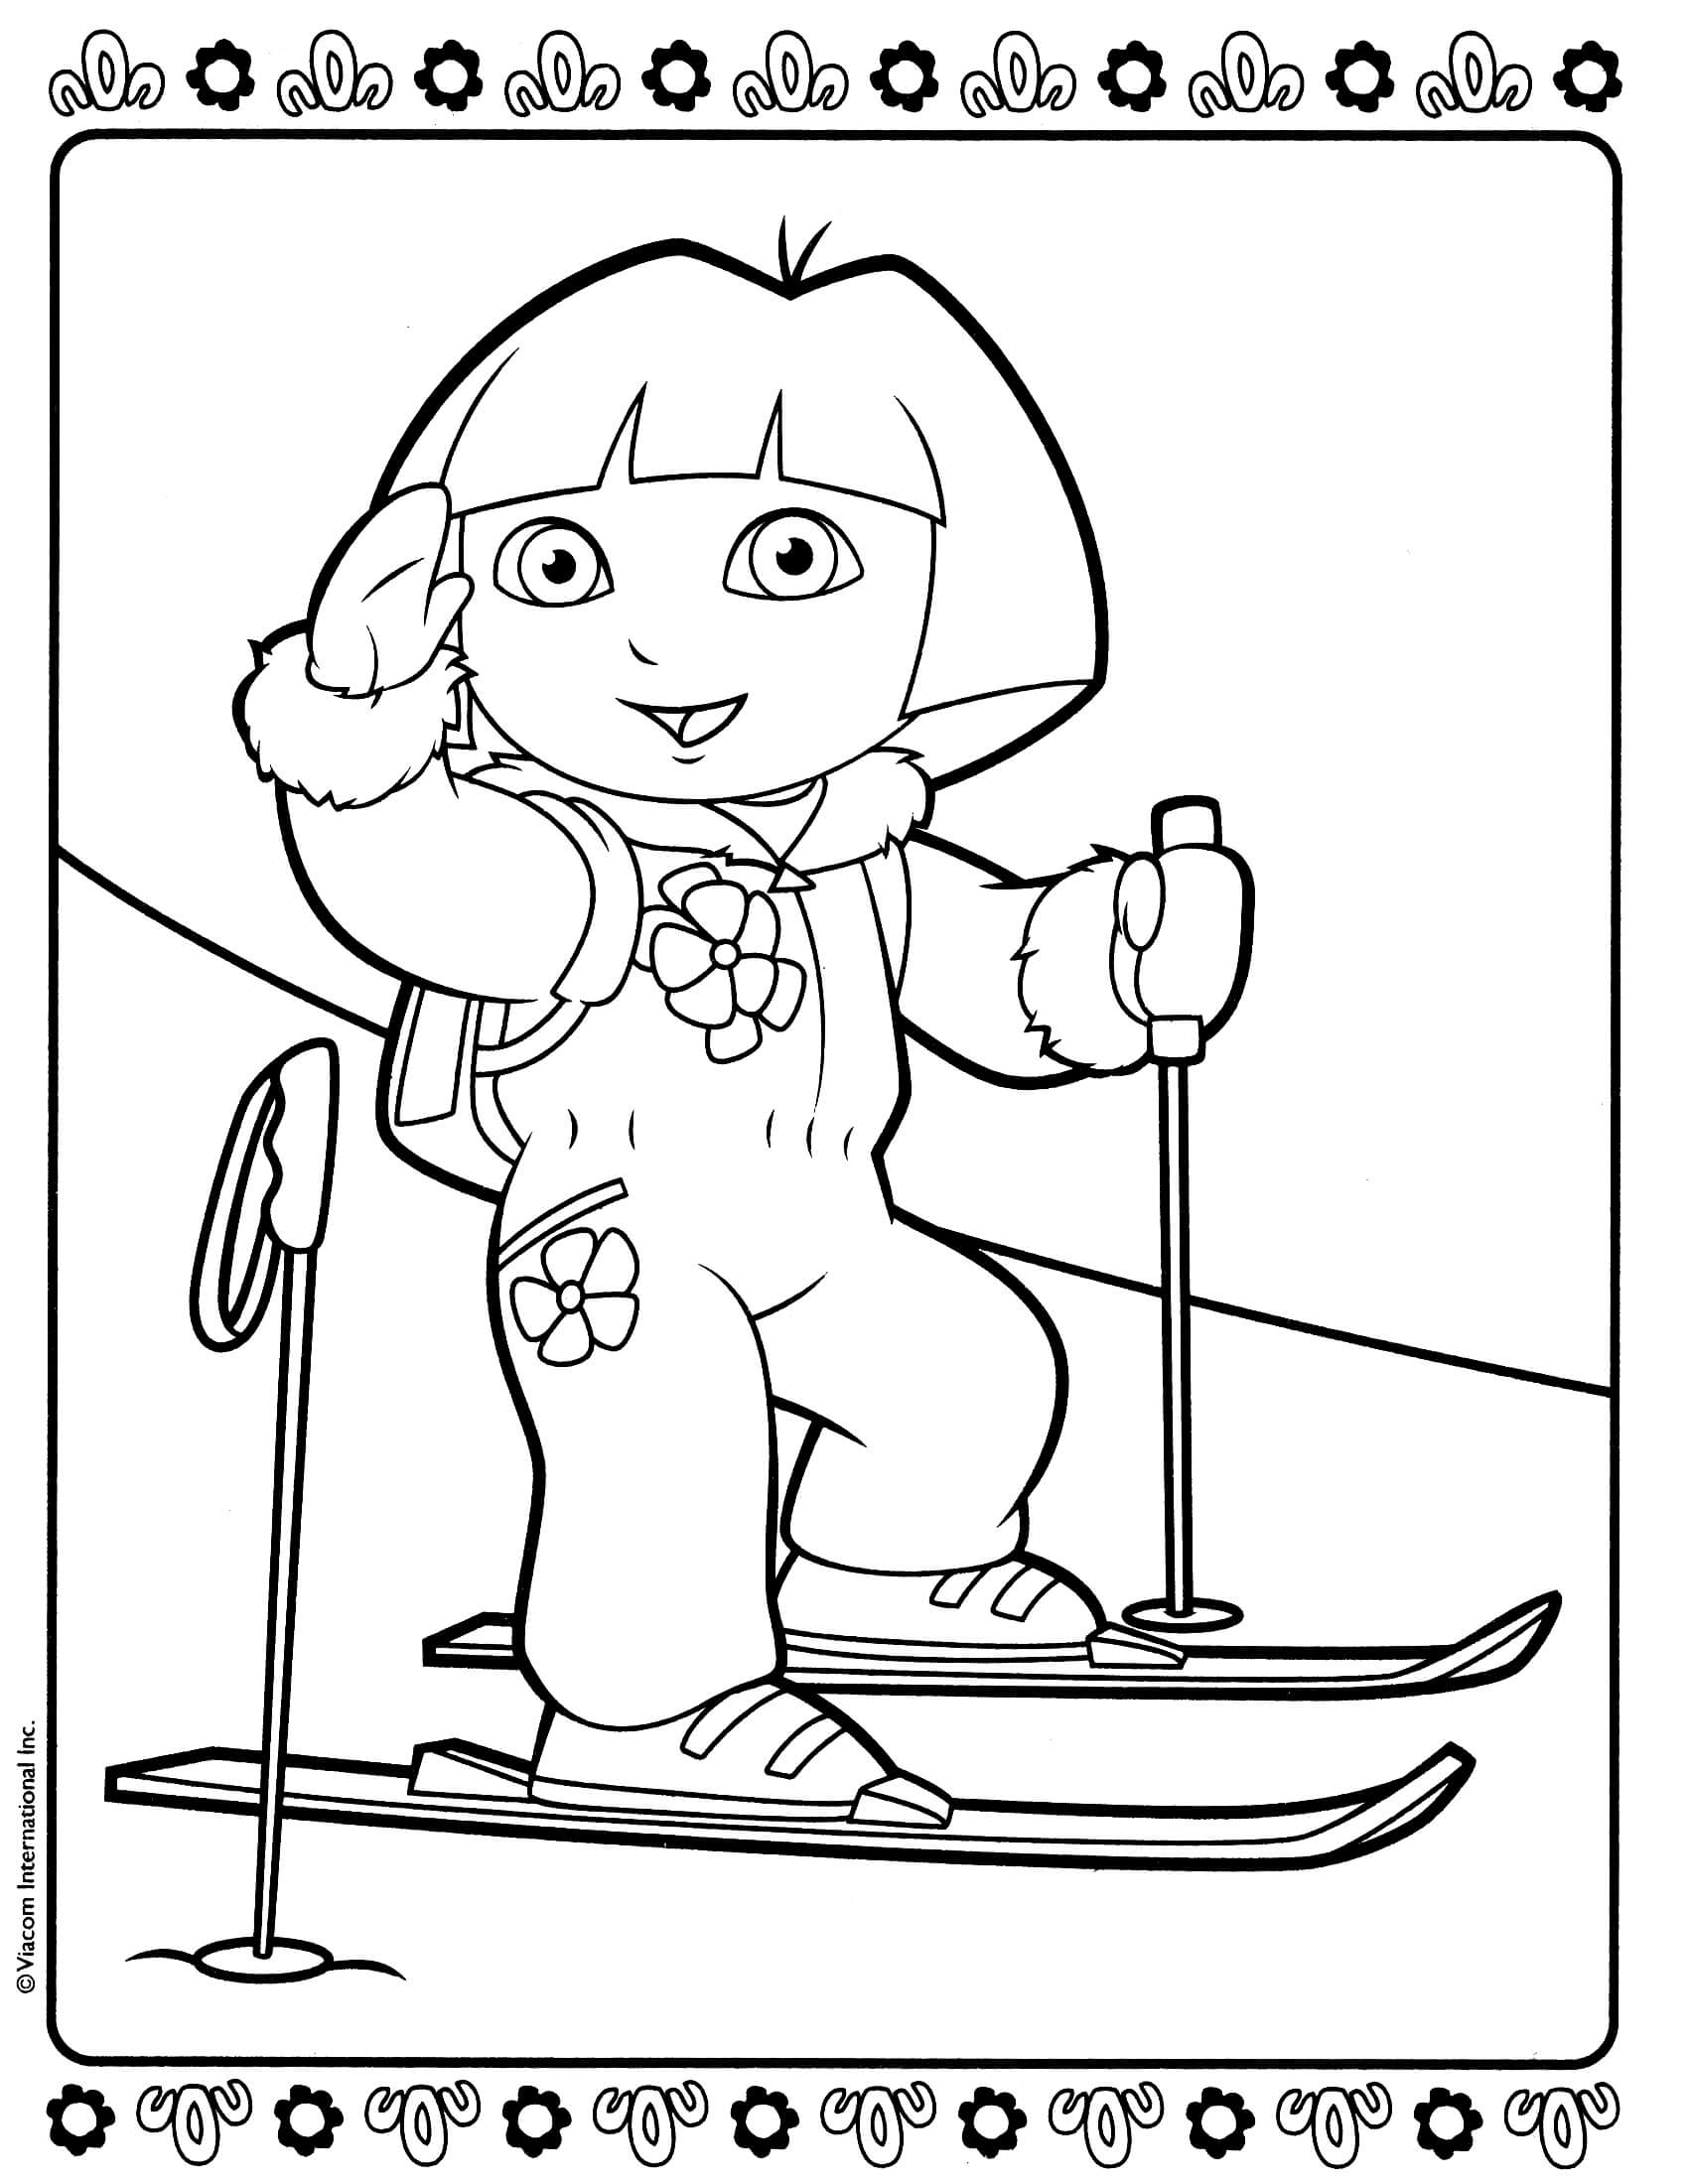 dora printables print download dora coloring pages to learn new things printables dora 1 1